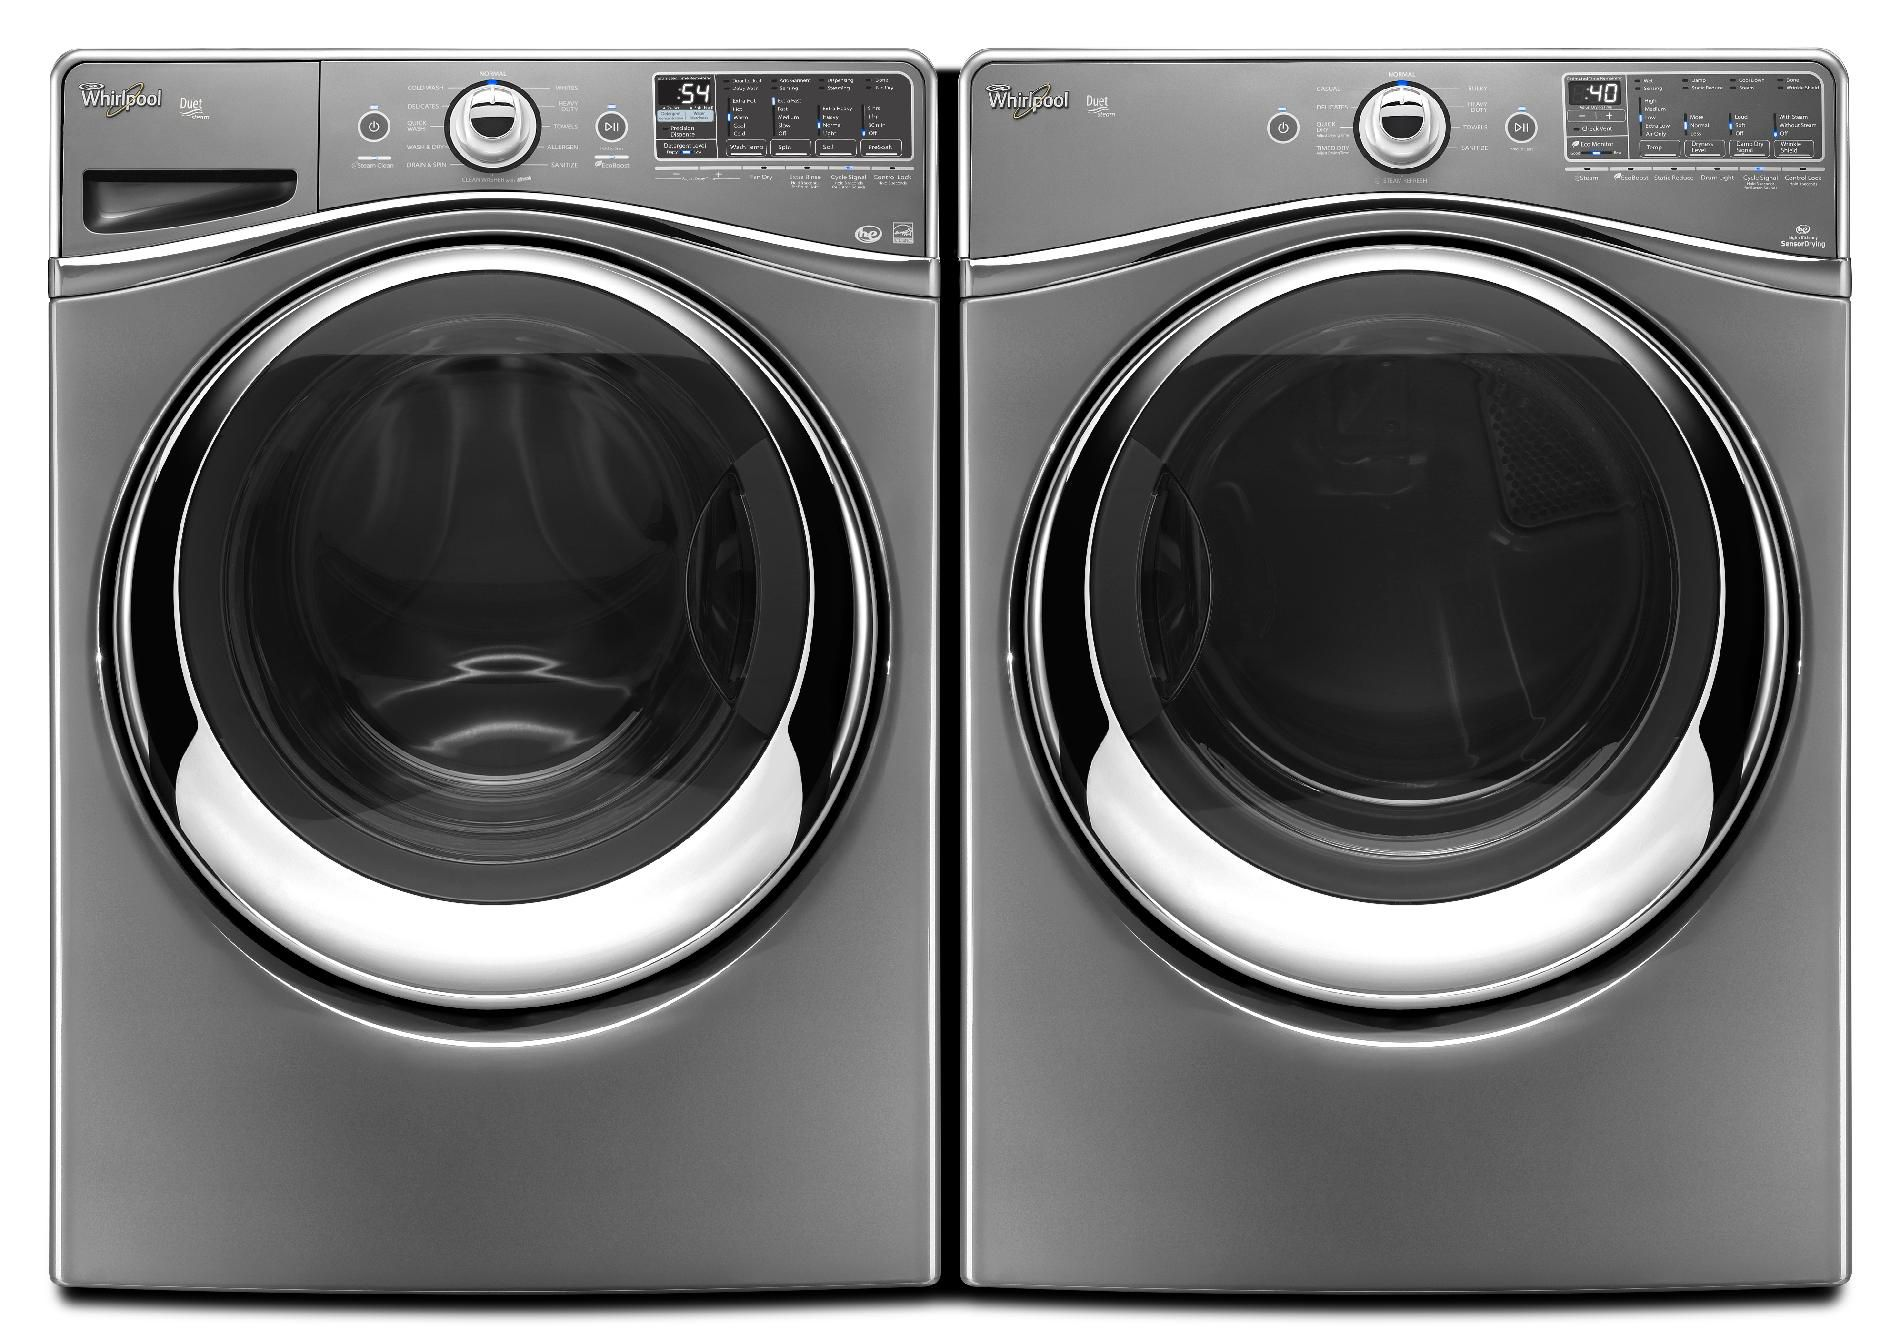 Whirlpool 4.3 cu. ft. Front-Load Washer w/ Precision Dispense Ultra - Chrome Shadow